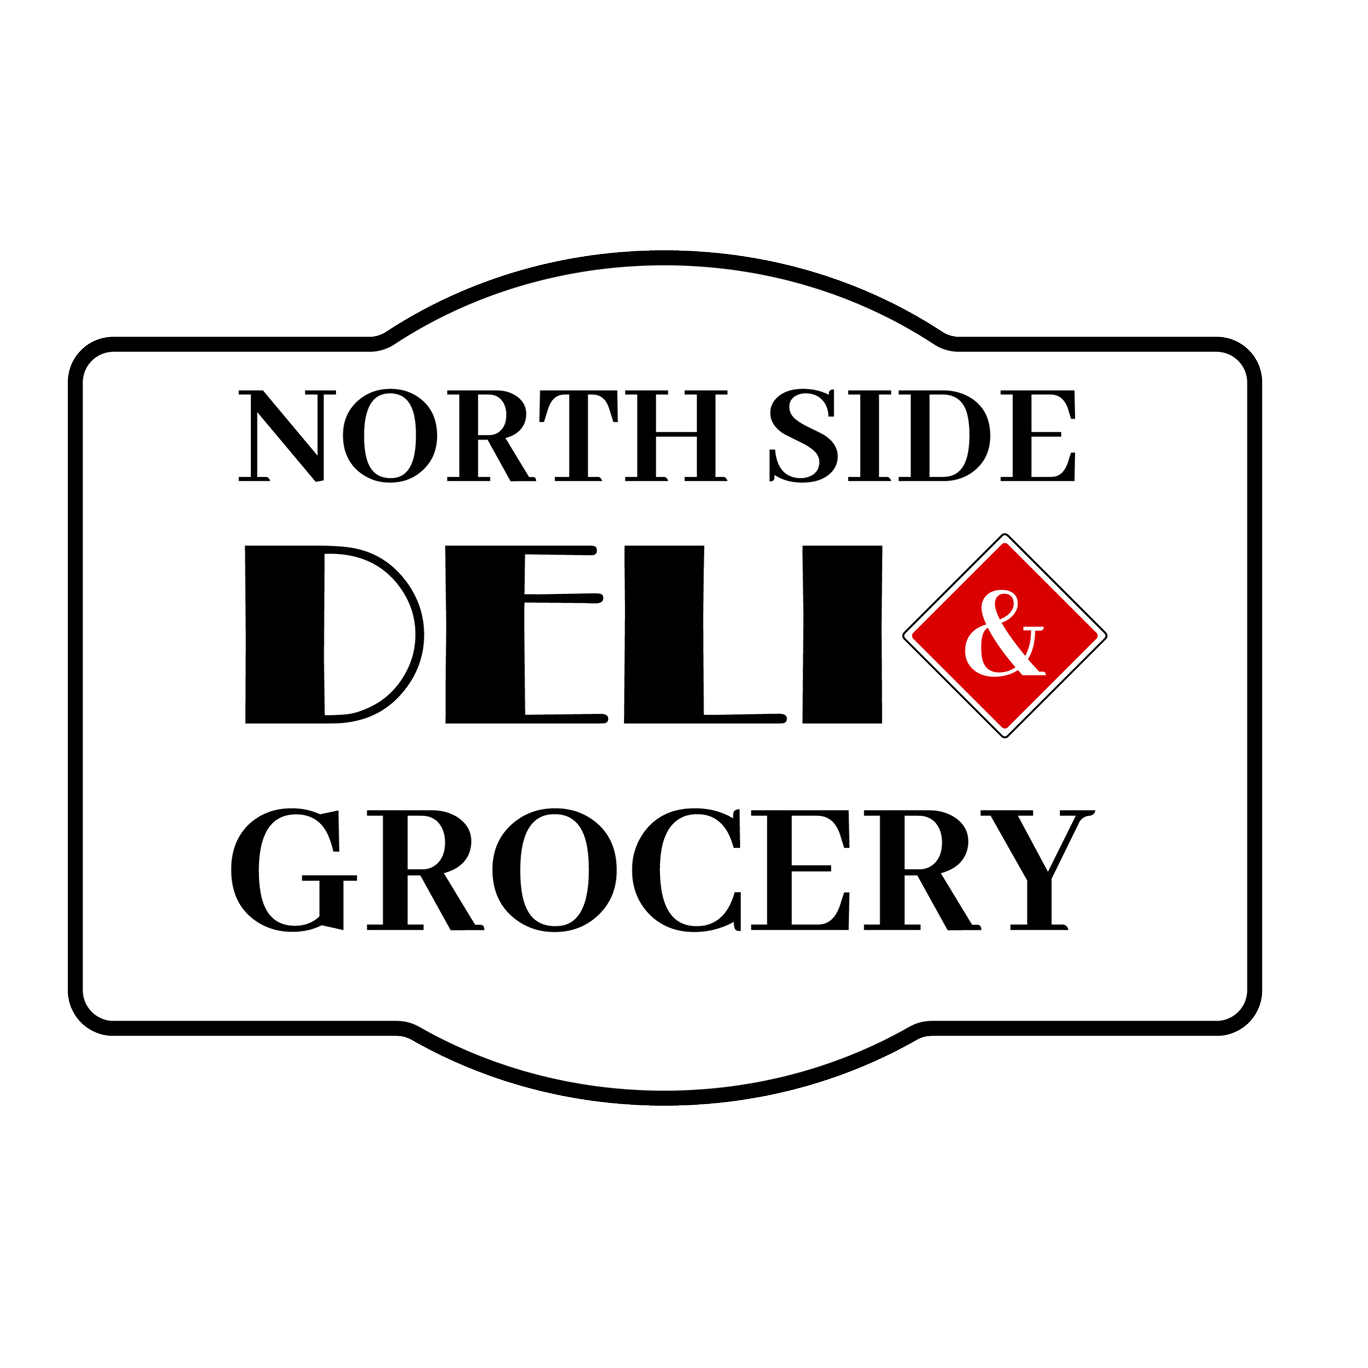 Northside Deli & Grocery